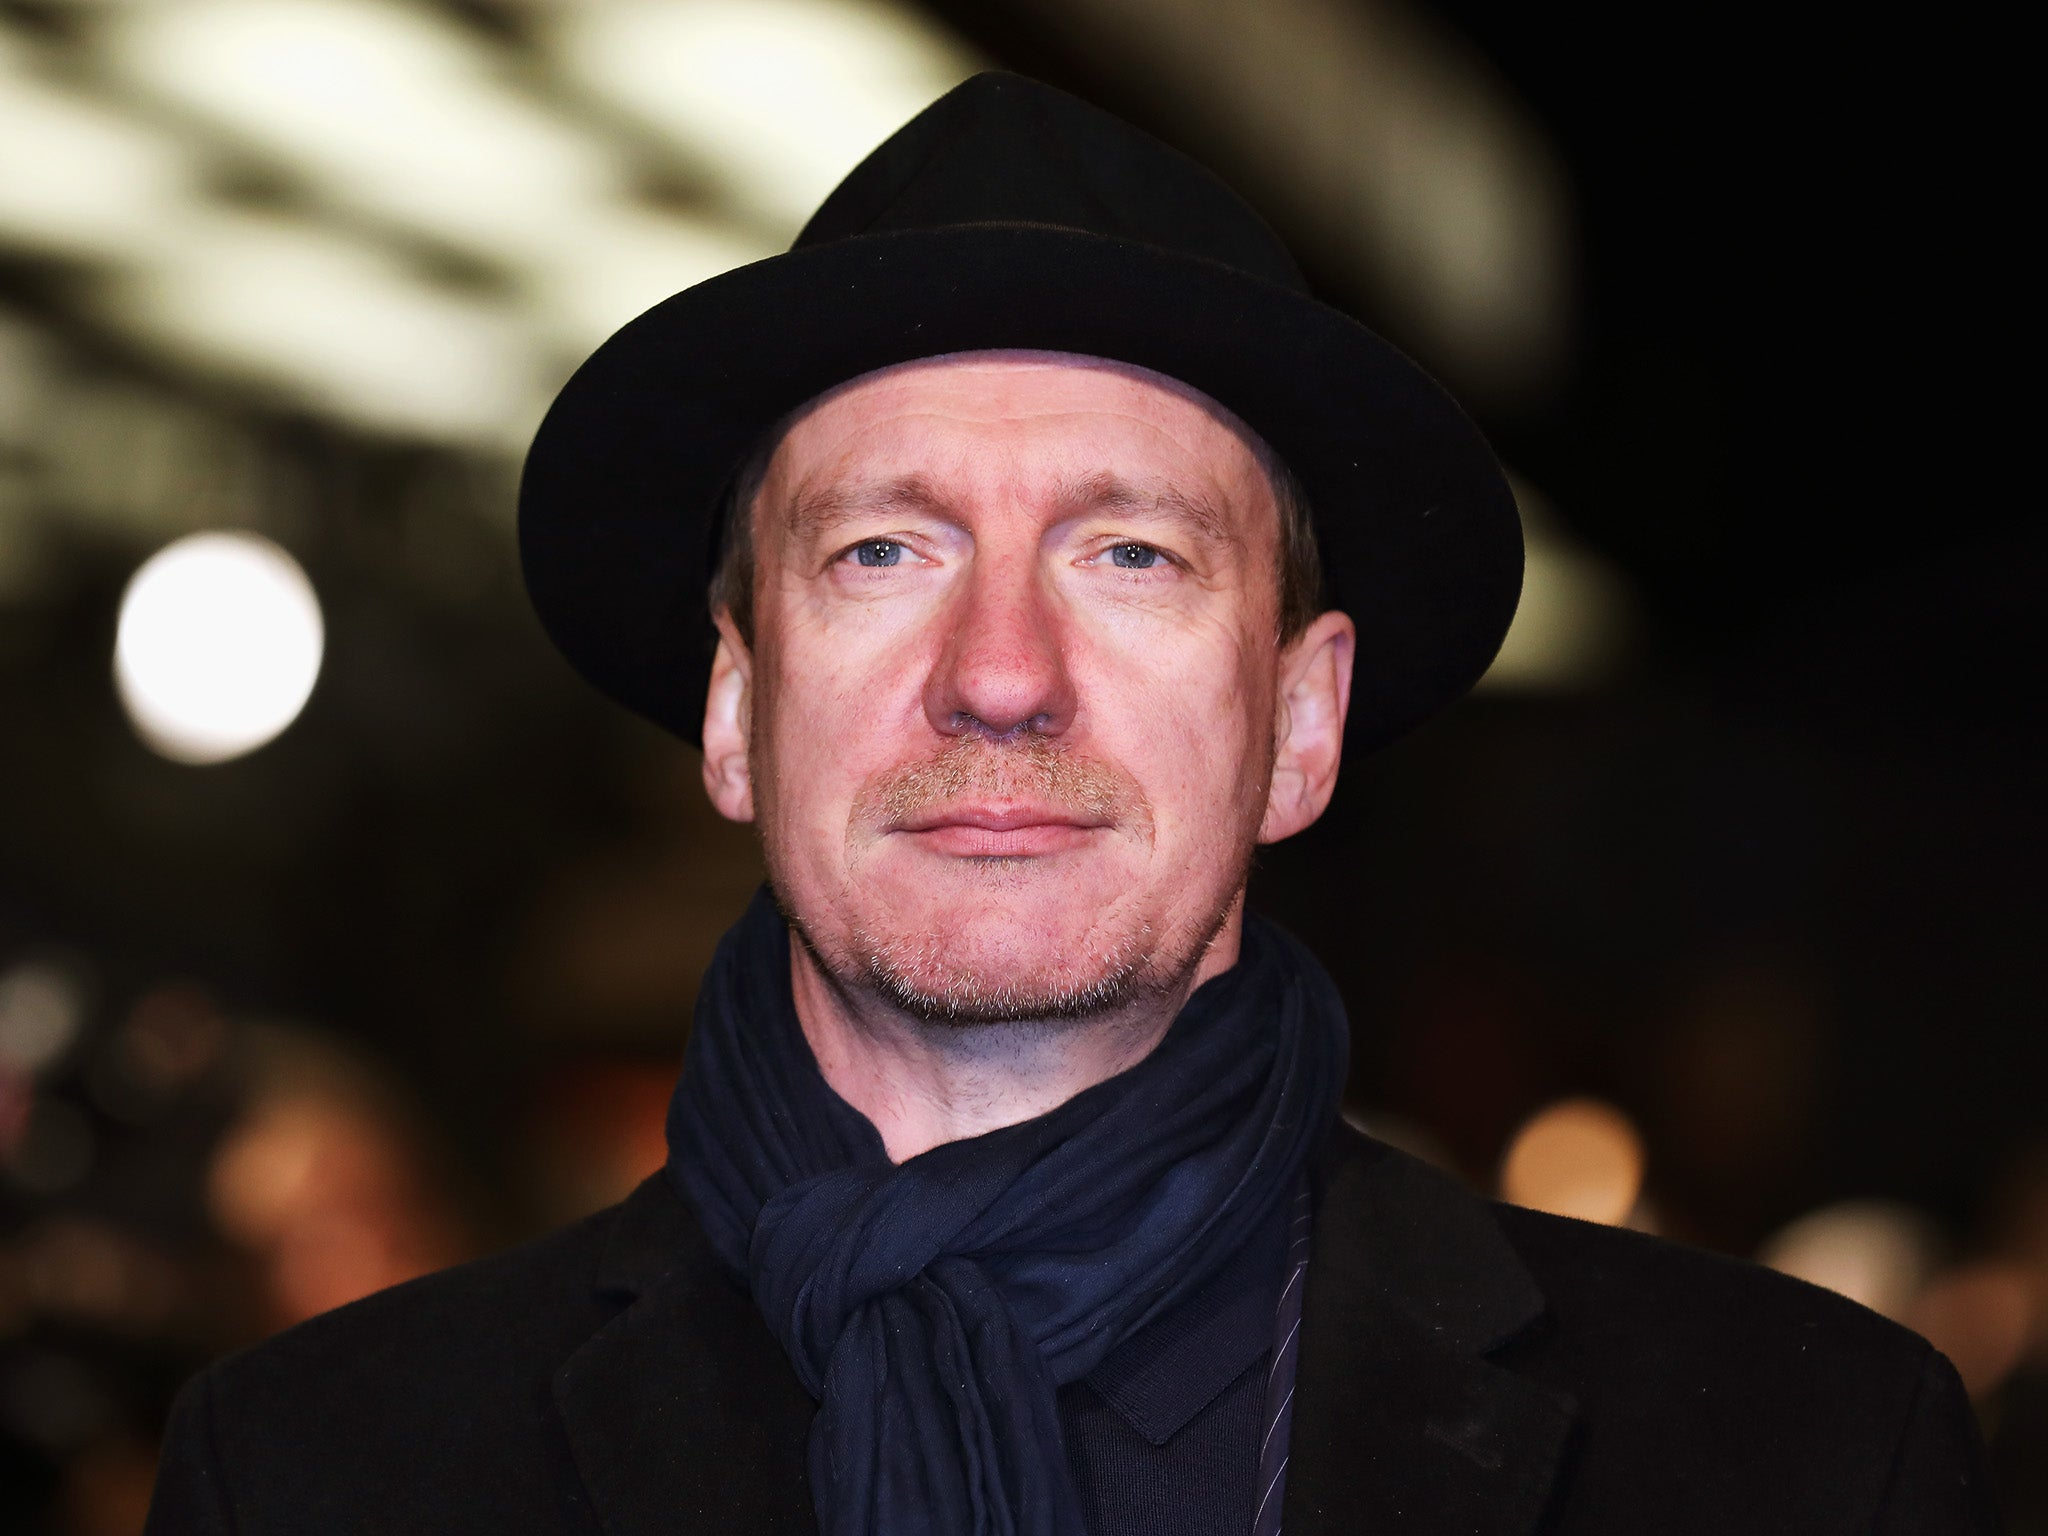 David Thewlis interview: 'I was so much in character, it got scary'